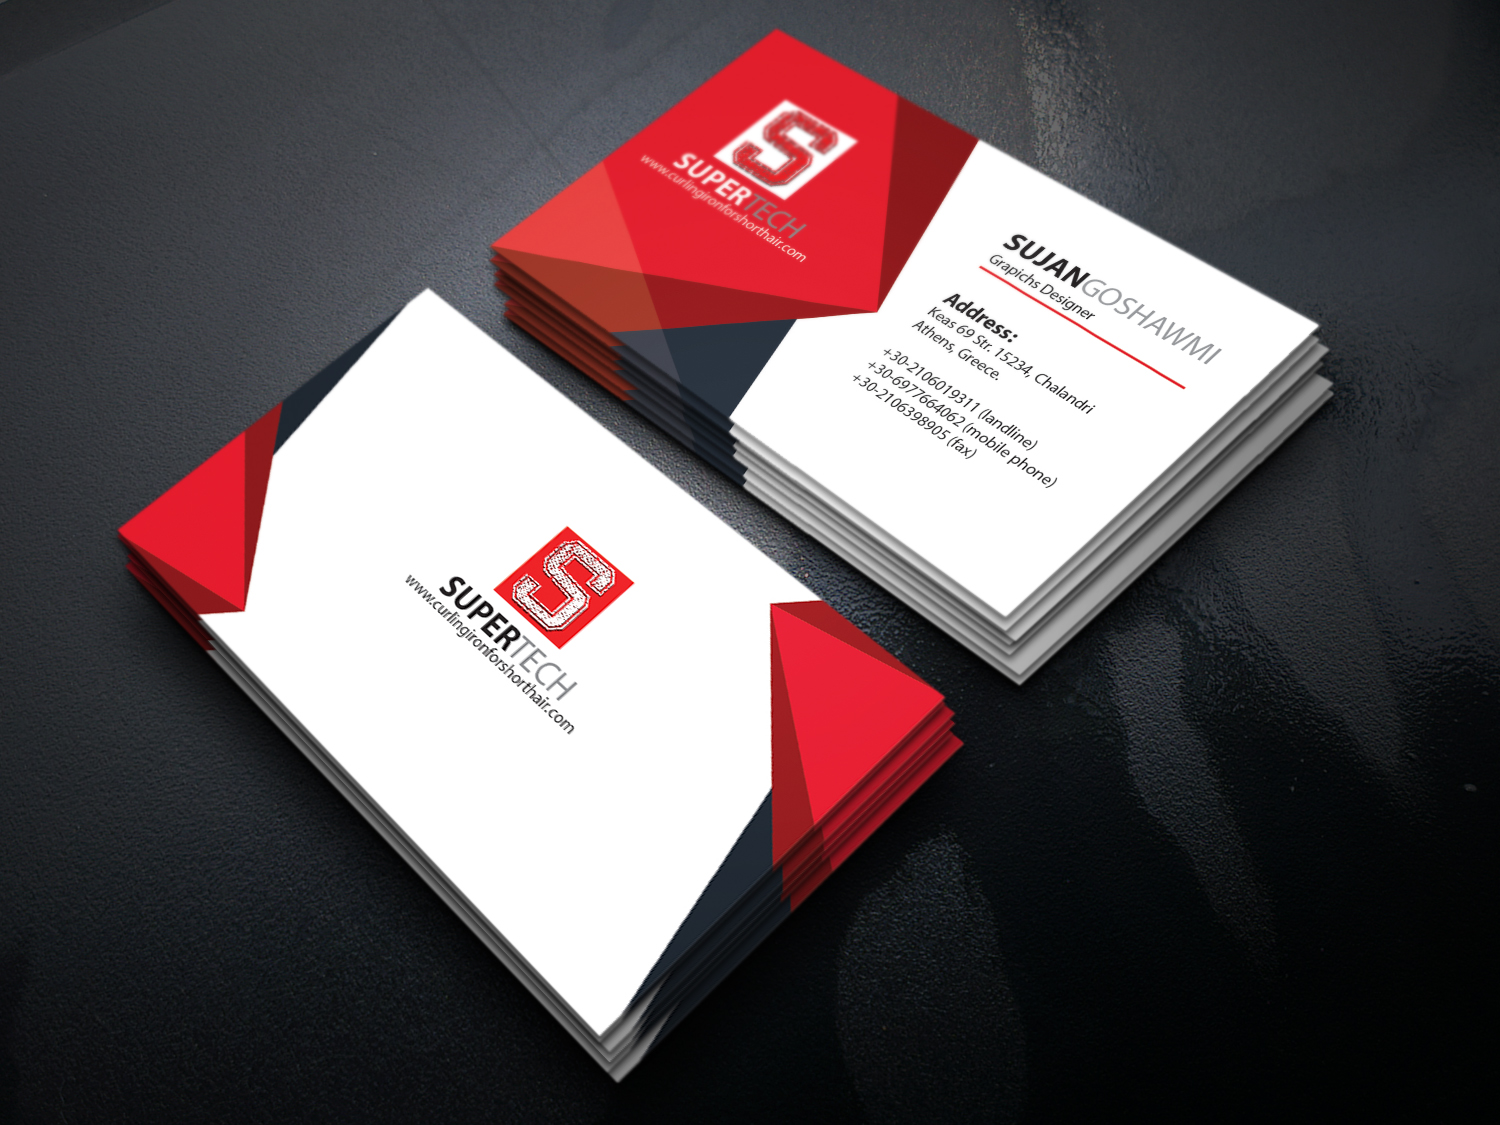 Awesome Business card Design